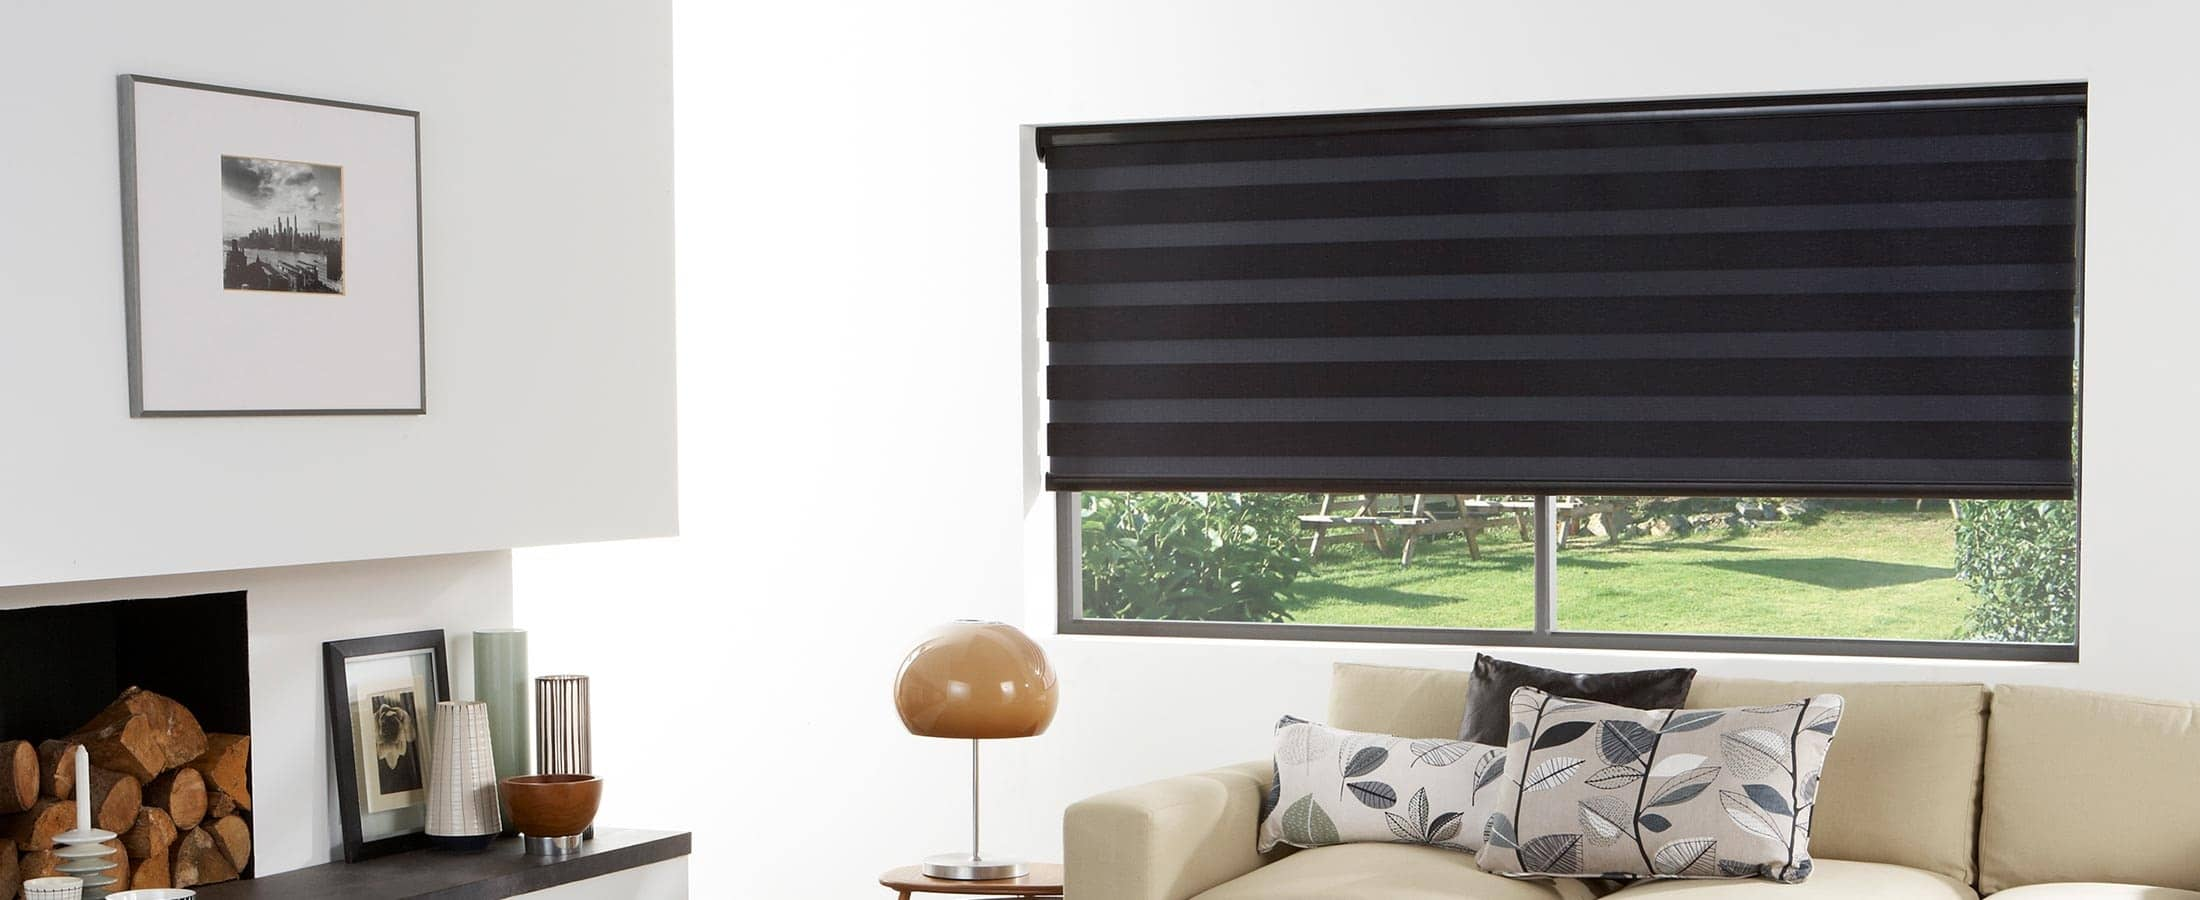 Best Vision Blinds Perth: ABC Blinds Price Guarantee